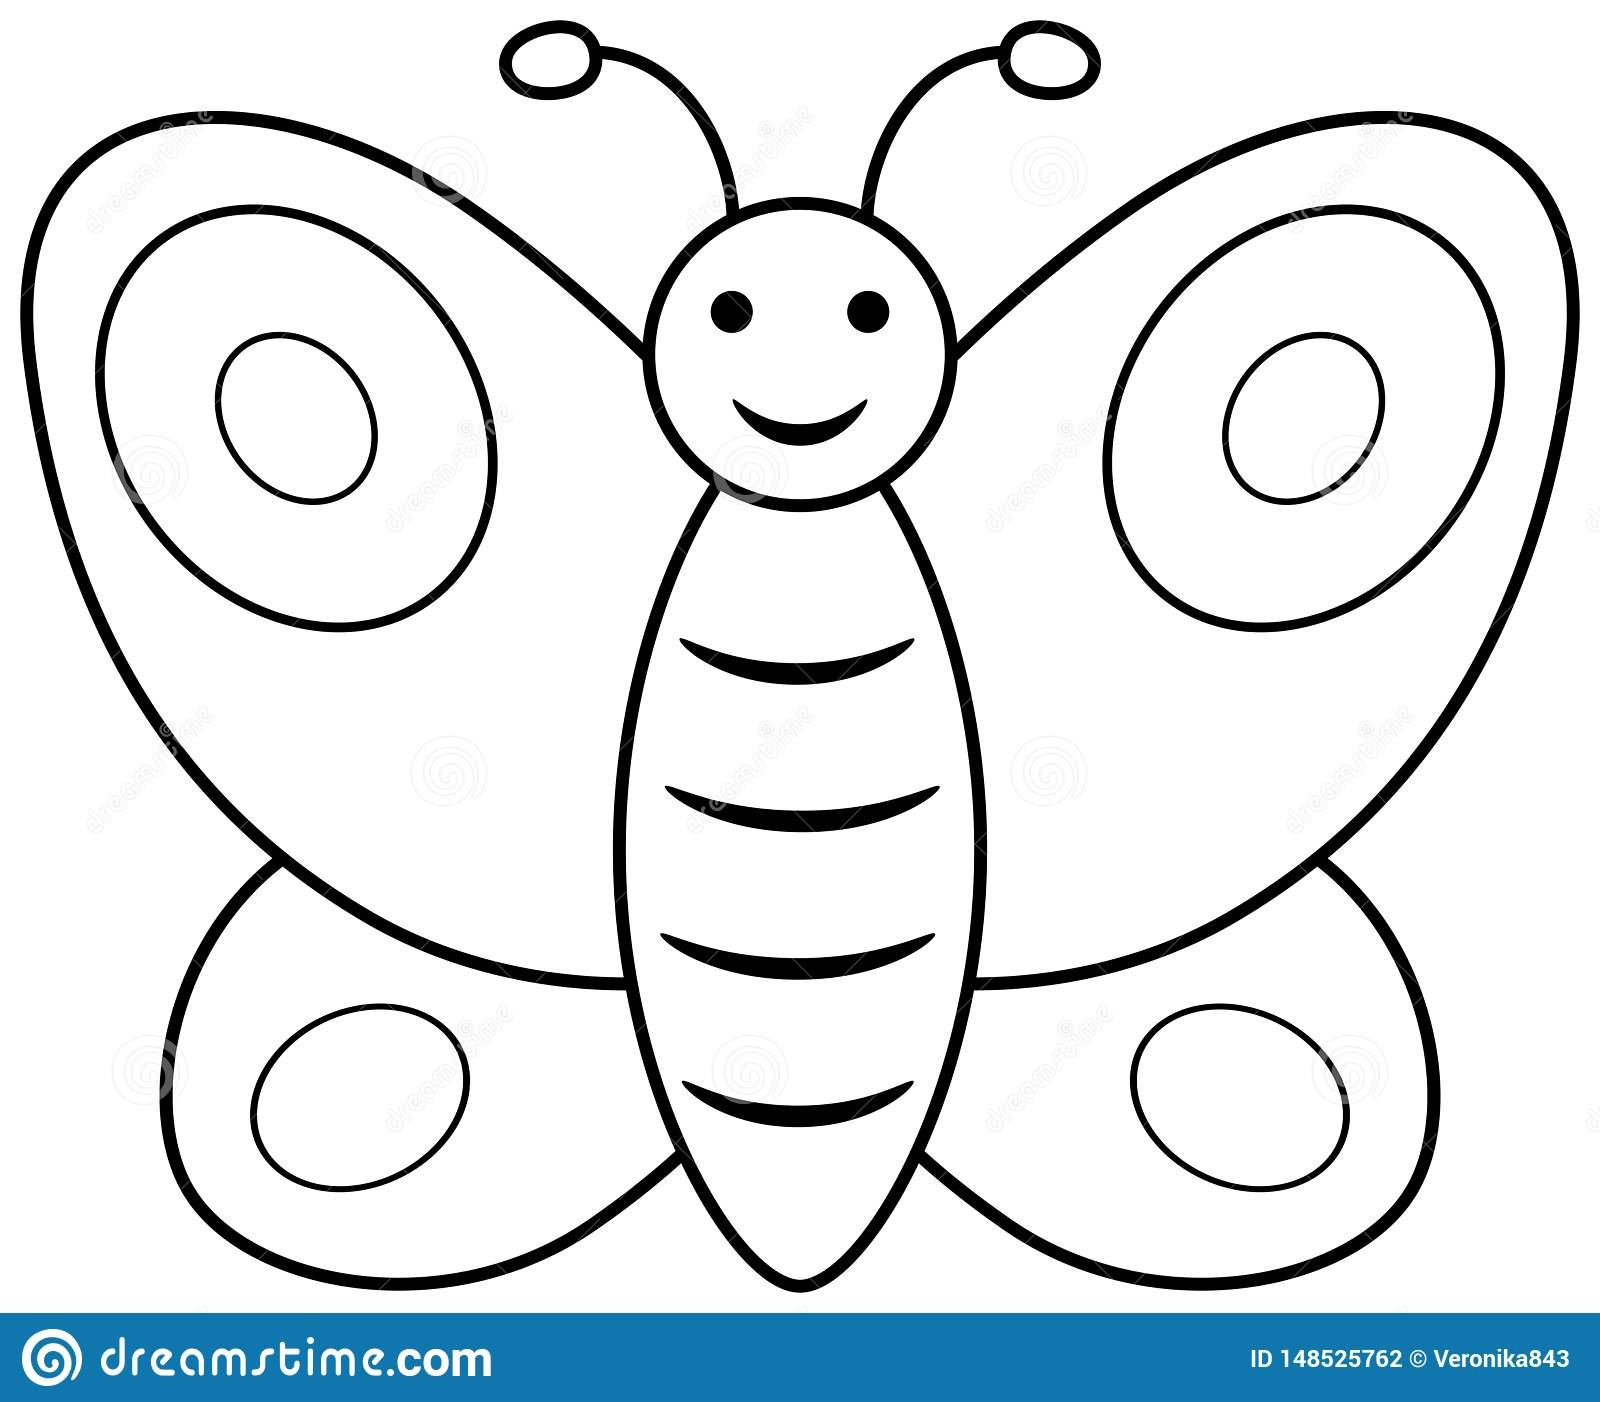 Butterfly Outline Clipart Vector Coloring Book Page For